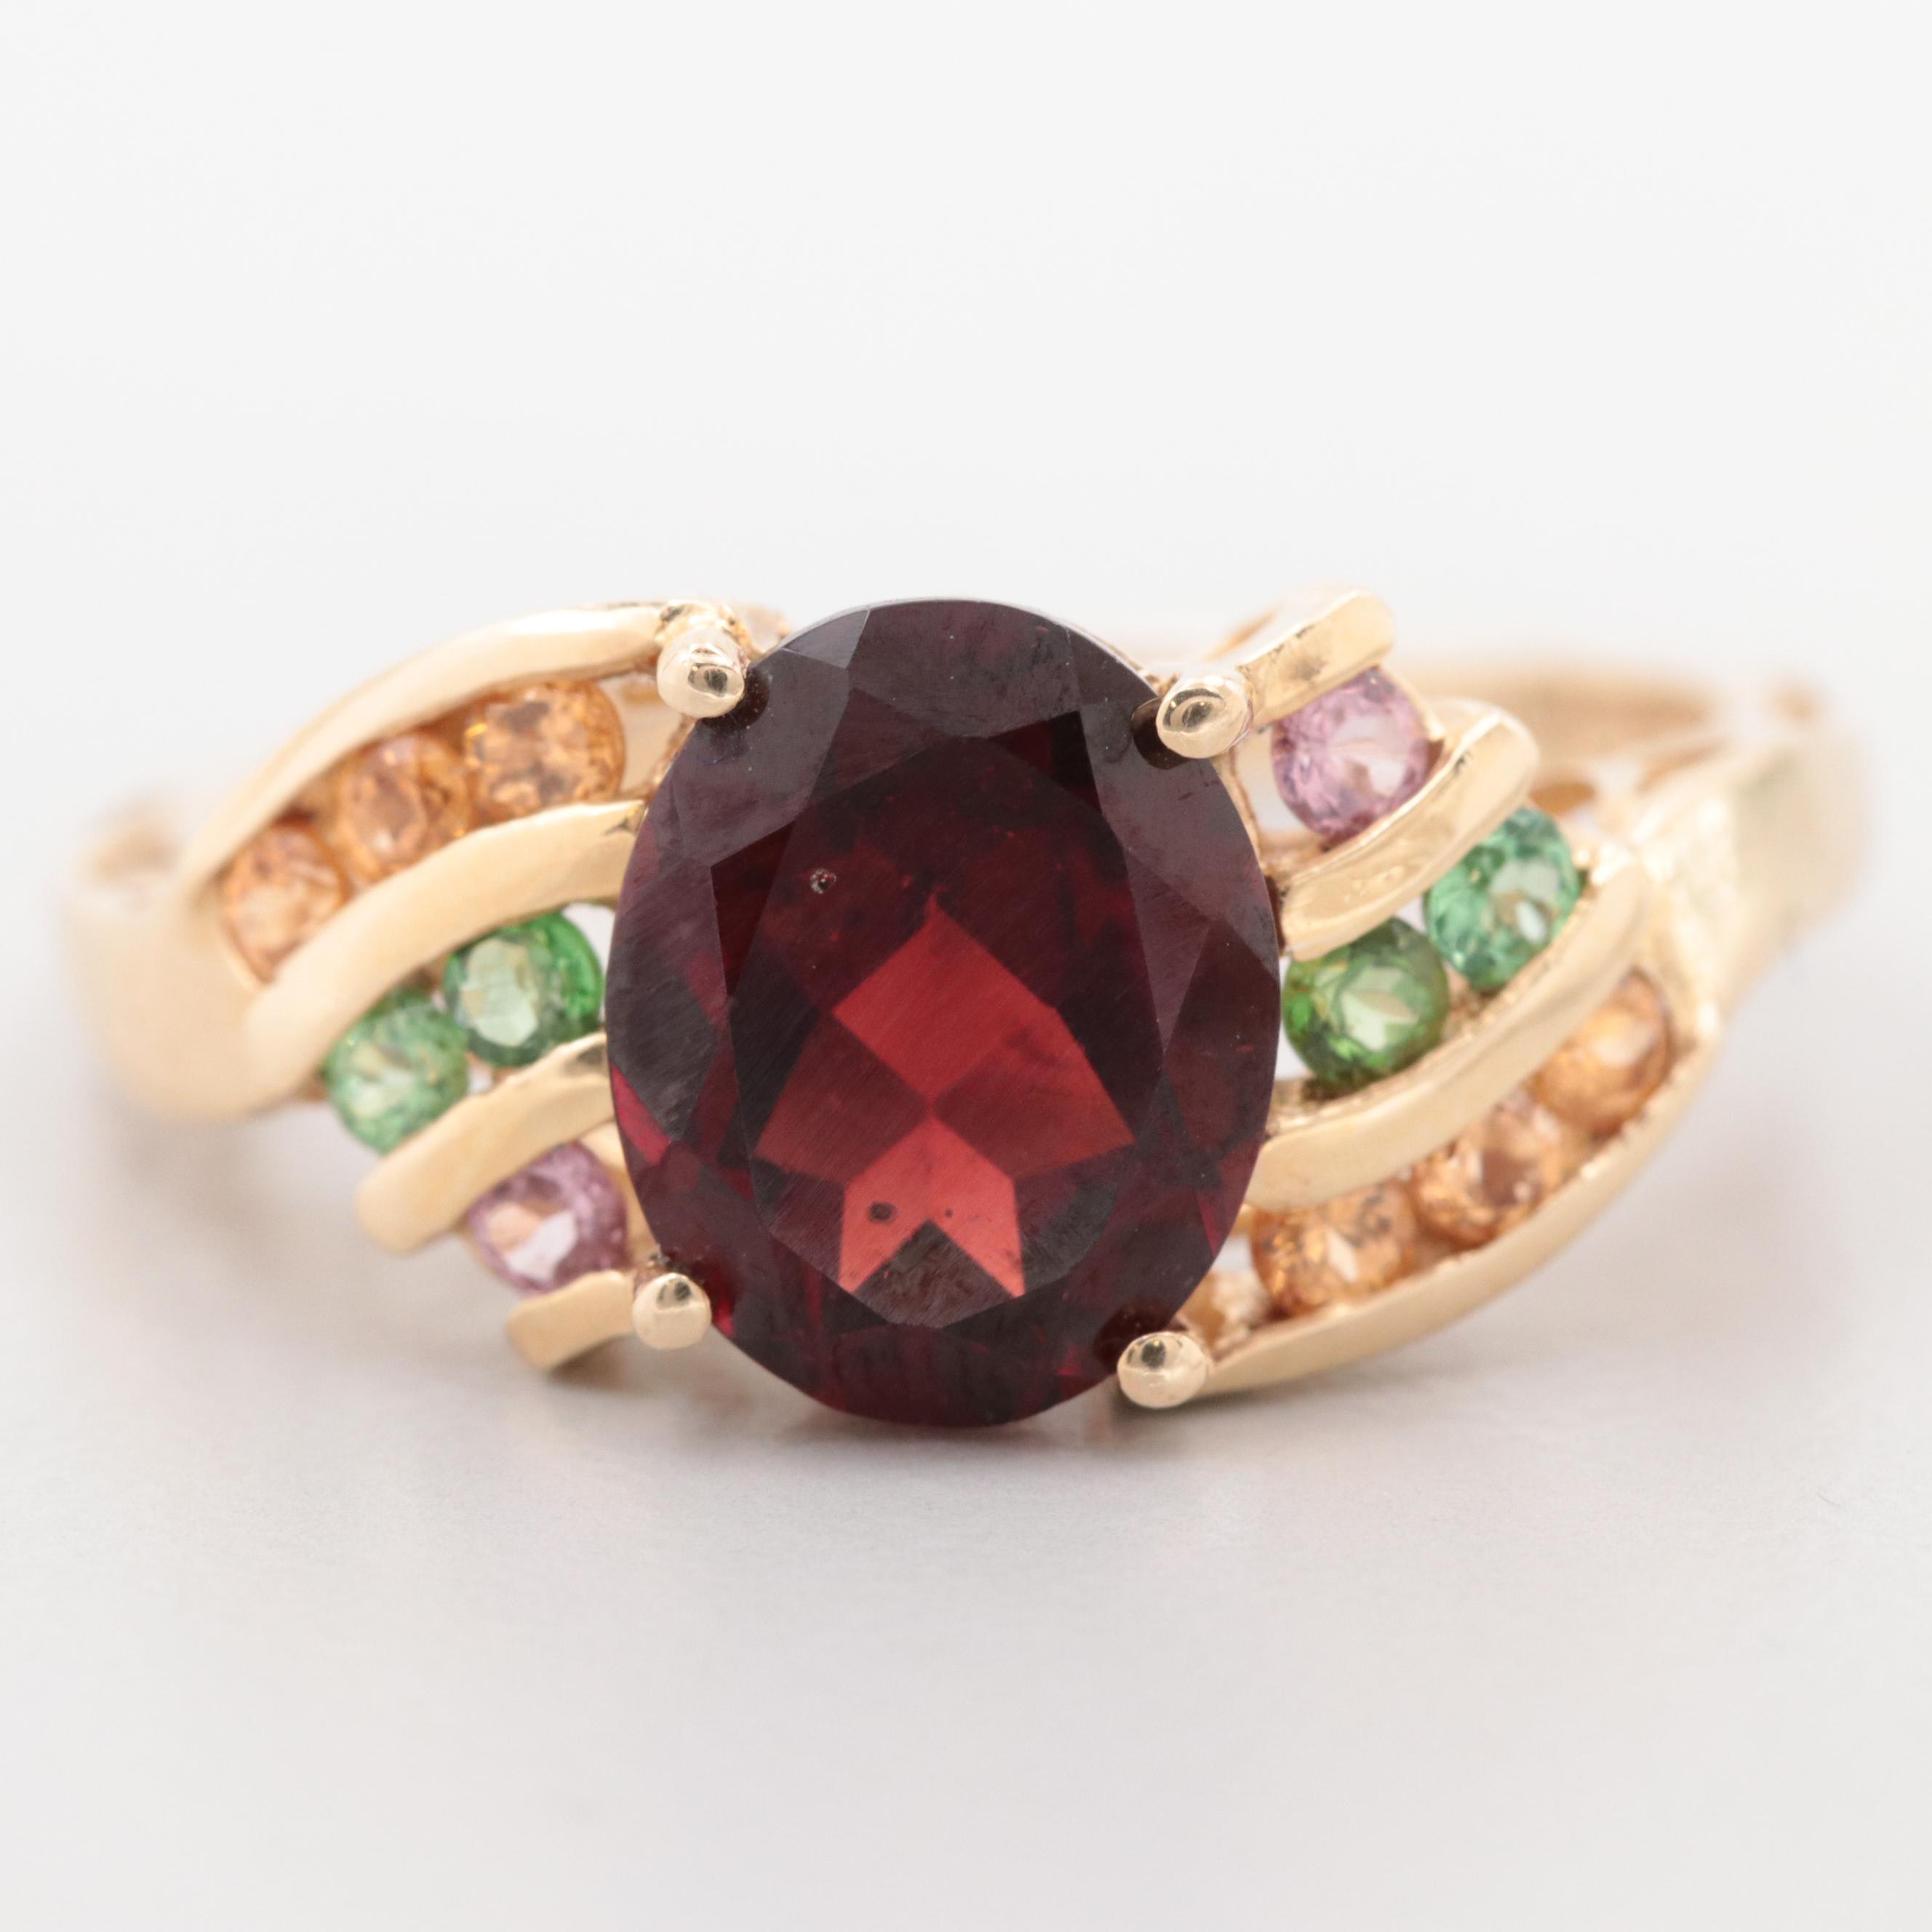 14K Yellow Gold Garnet, Pink Tourmaline, Peridot, and Citrine Ring with Openwork